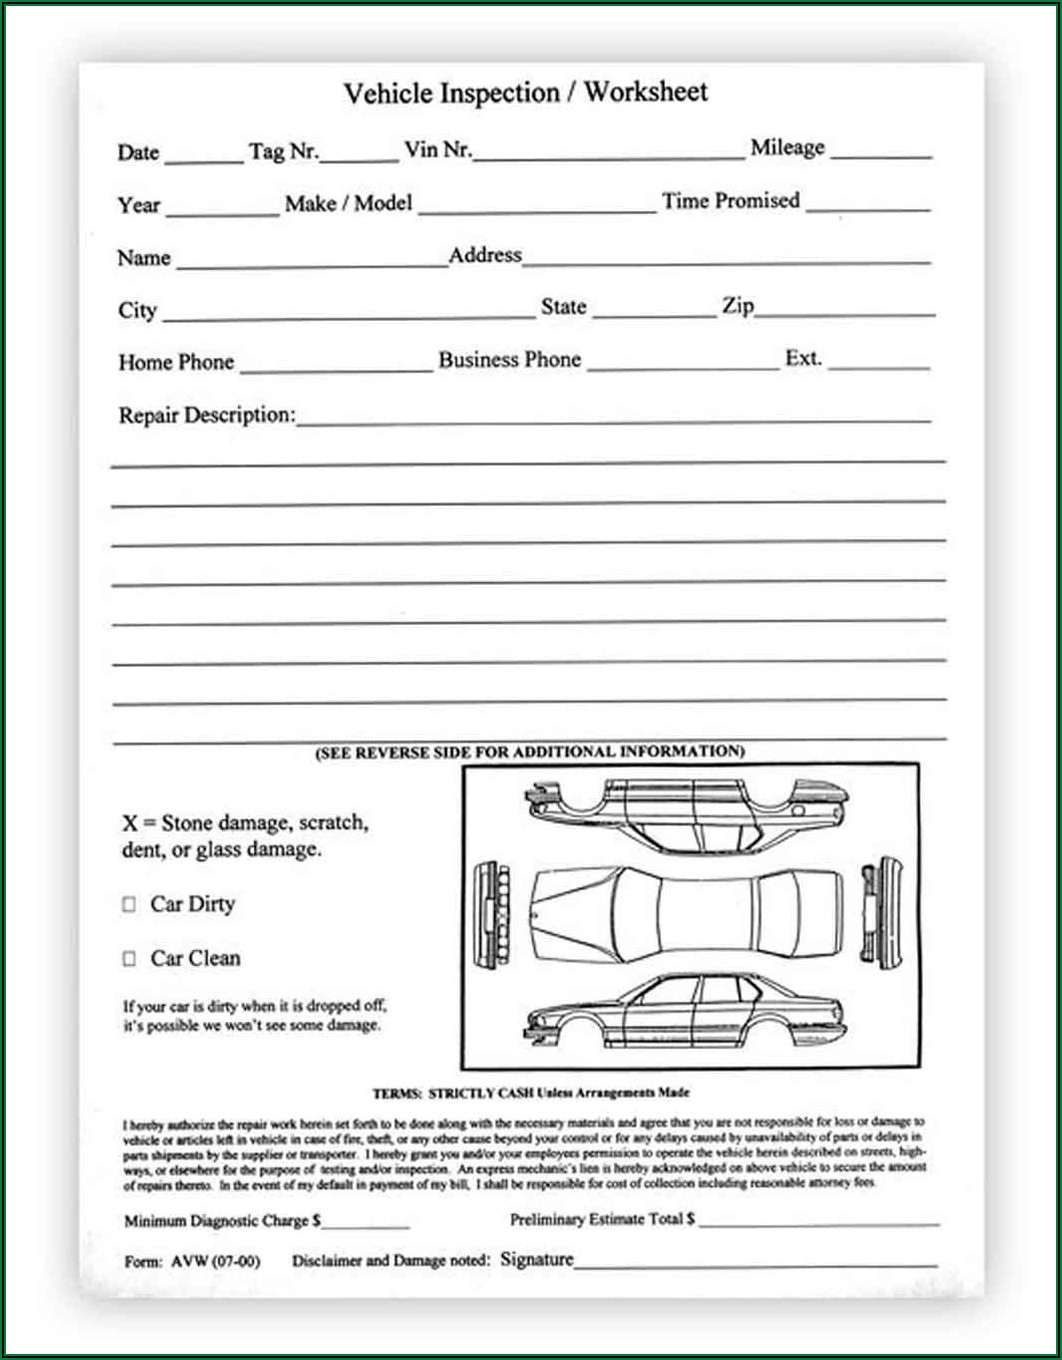 3 Part Vehicle Transport Bill Of Lading Form